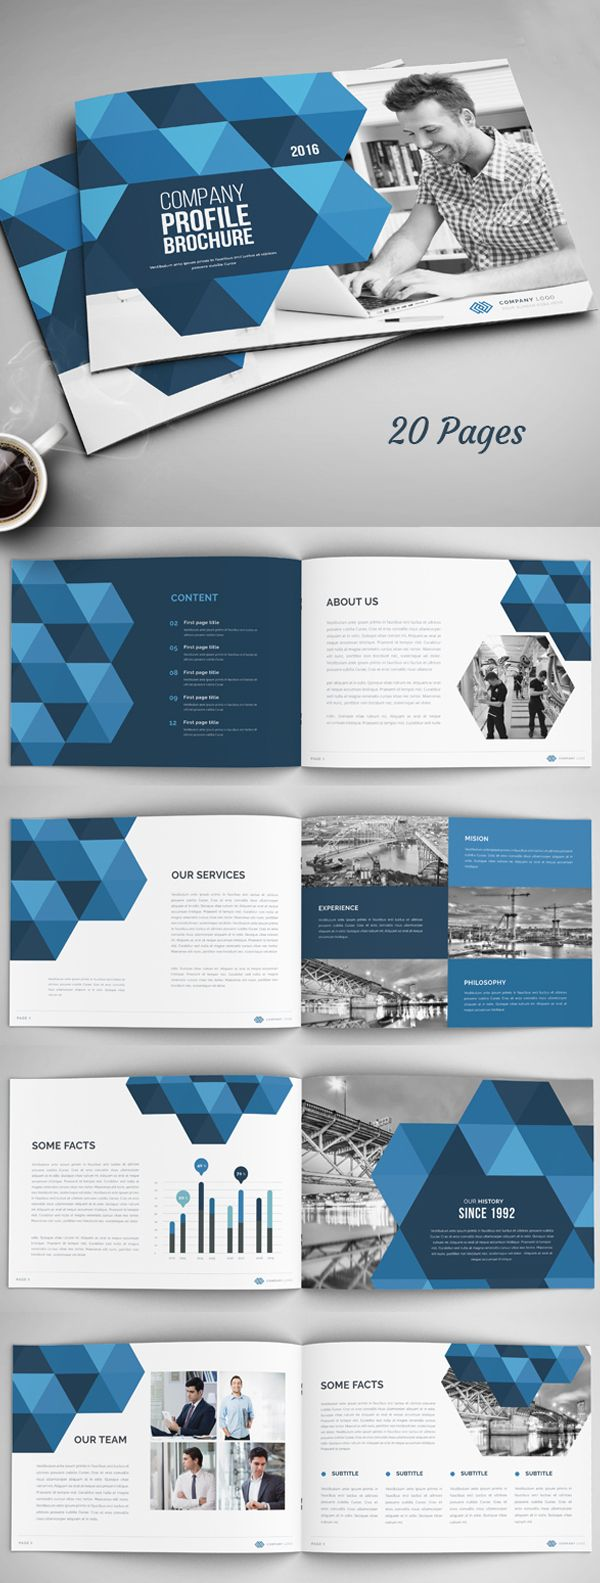 Best 25+ Company profile design ideas on Pinterest | Company ...